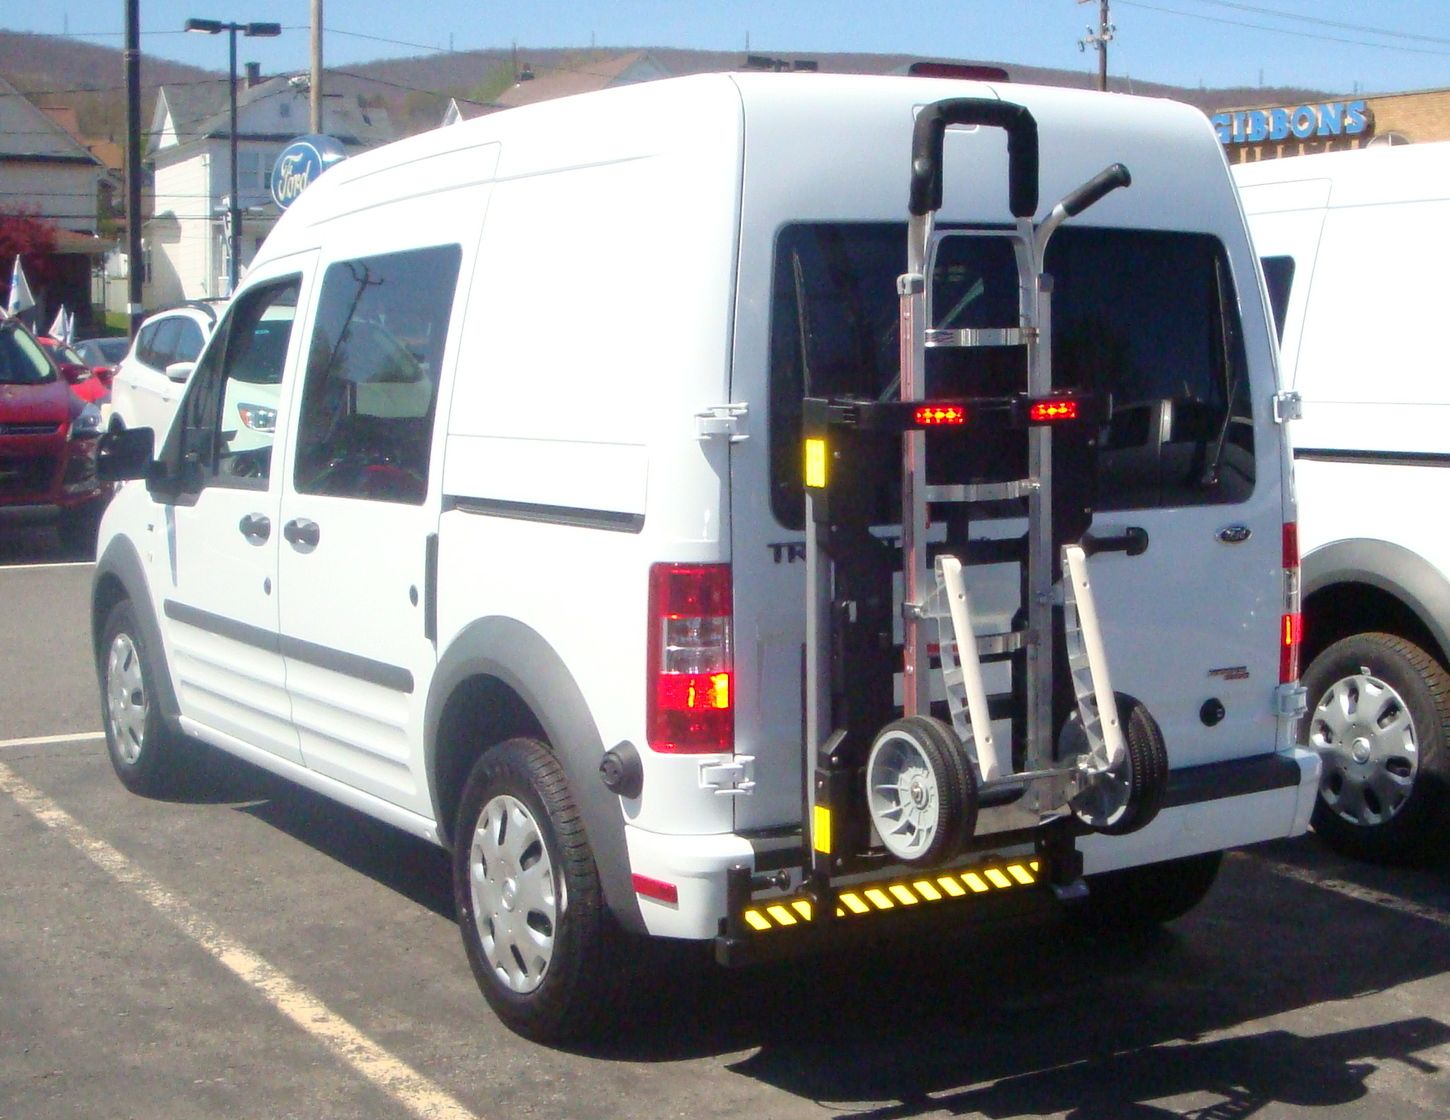 Pin On Hand Truck Sentry System By Hts Systems